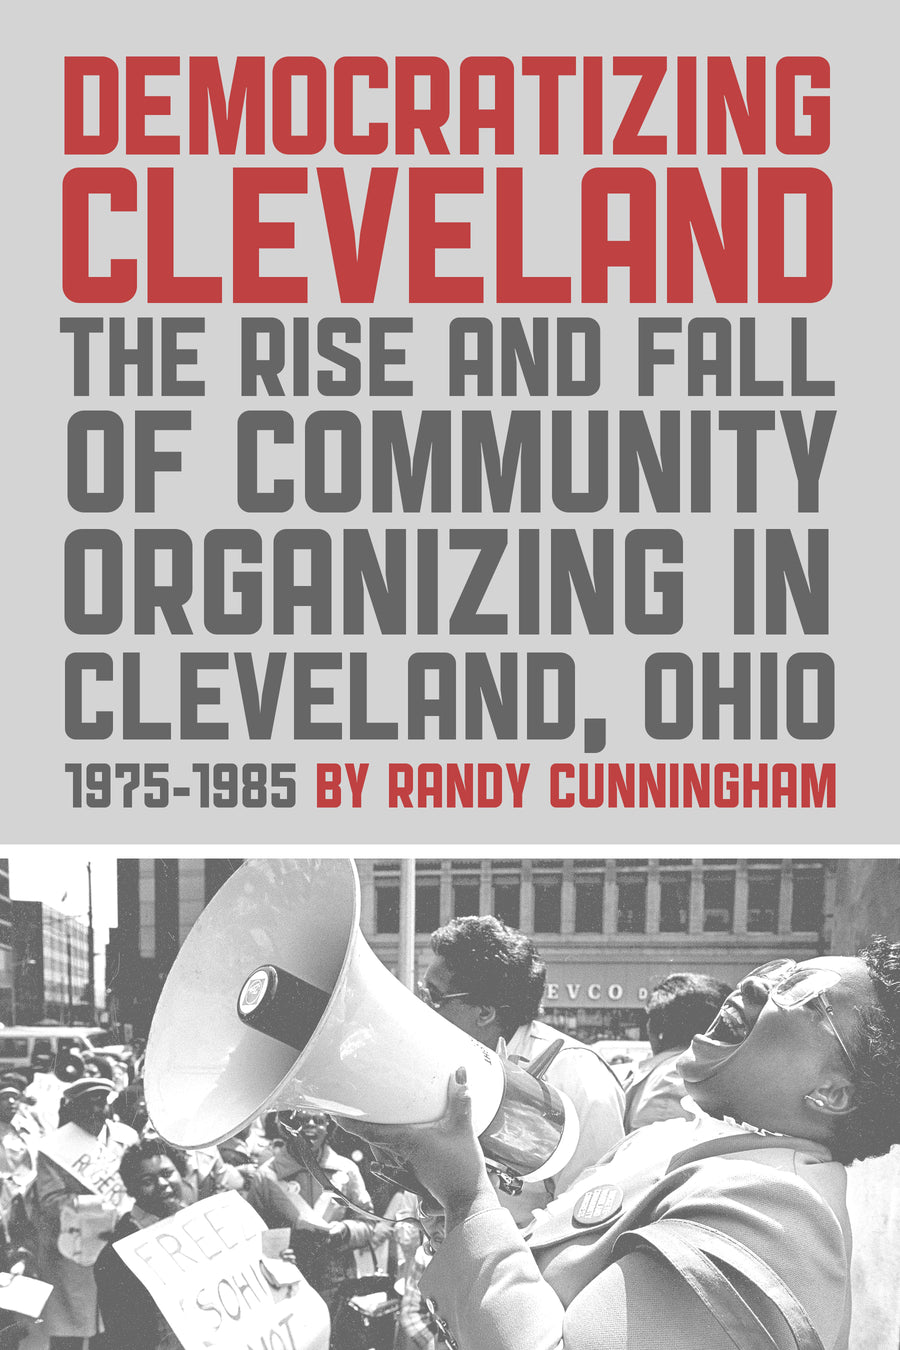 Democratizing Cleveland: The Rise and Fall of Community Organizing in Cleveland, Ohio 1975-1985 - Belt Publishing